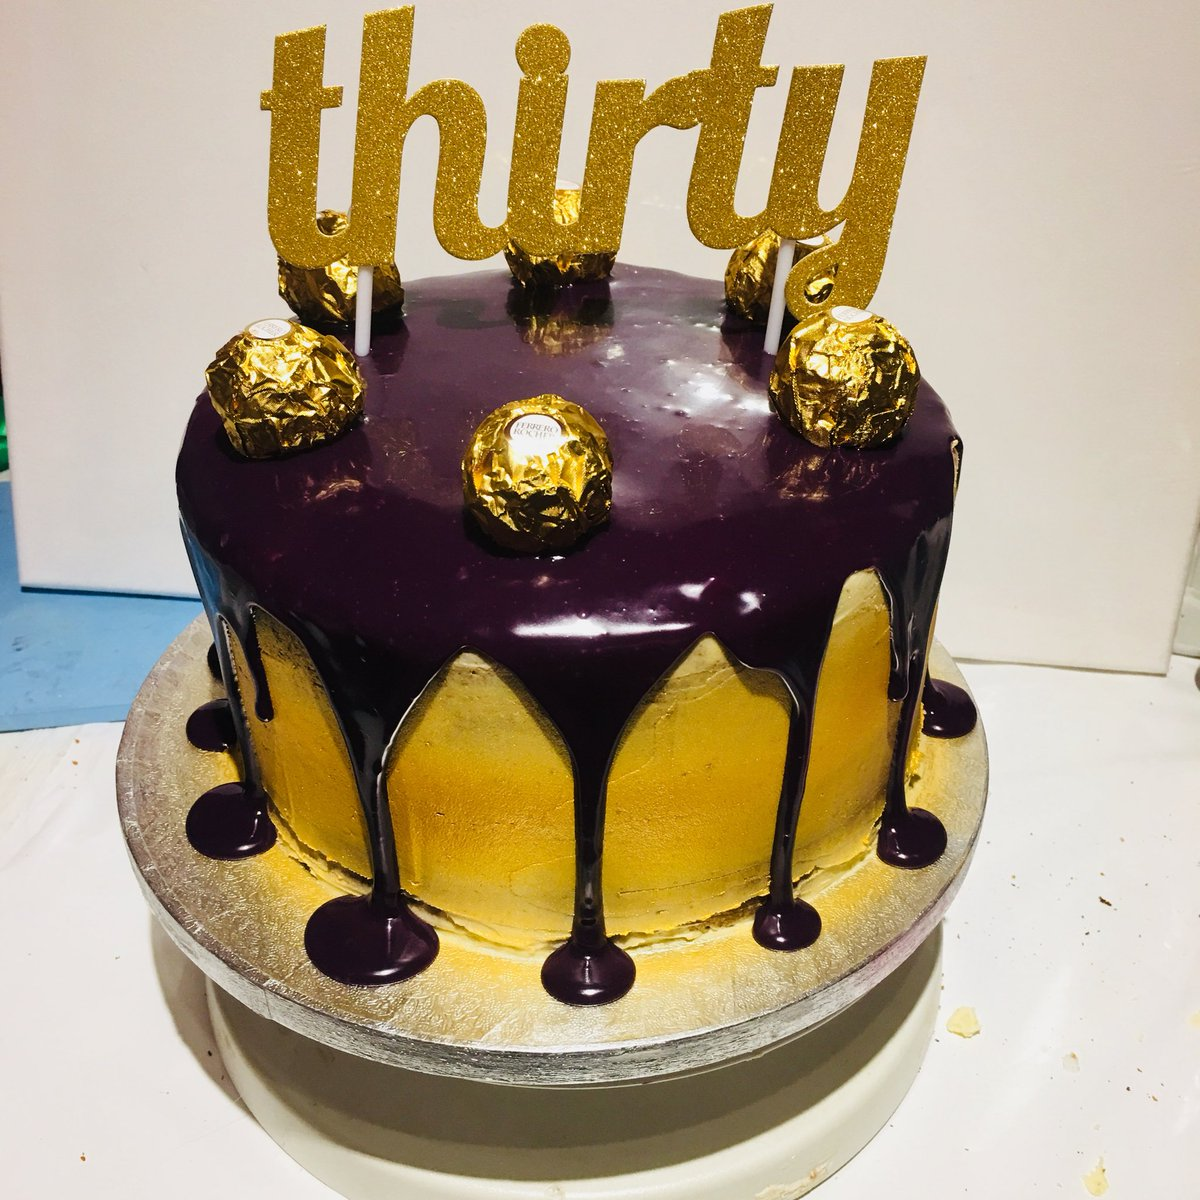 Charl On Twitter Very Proud Of This Birthday Cake I Made For A